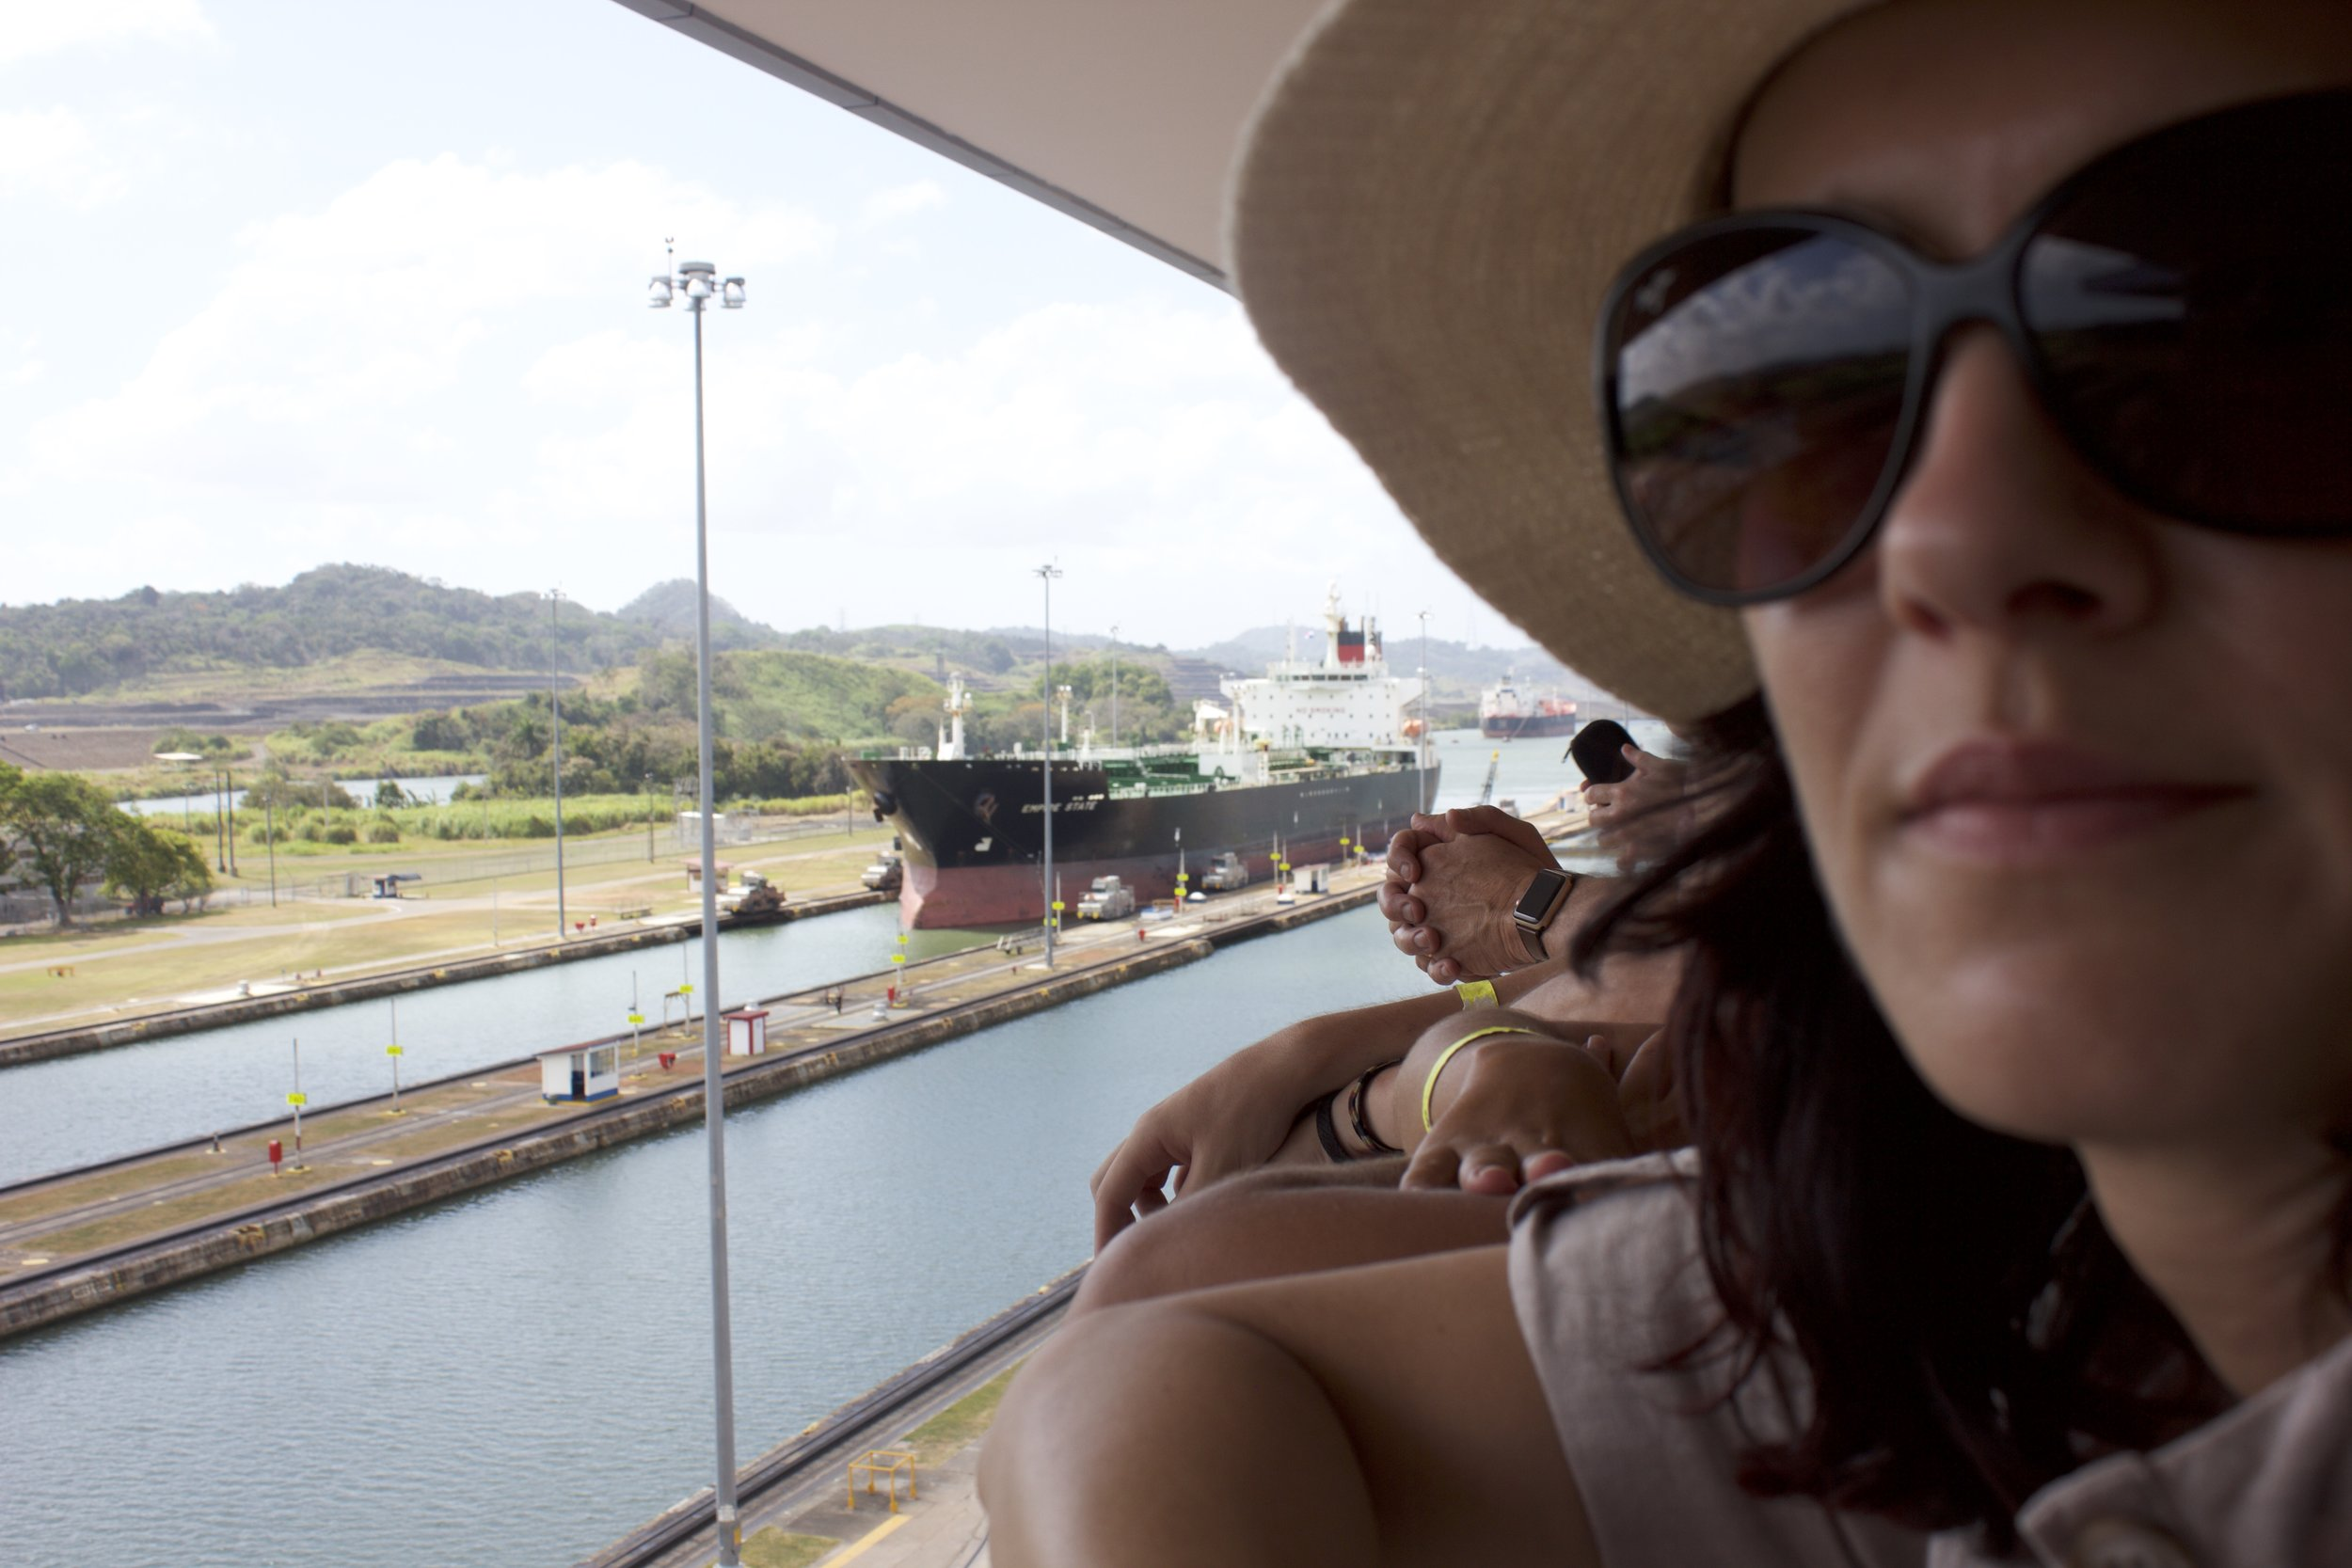 Miraflores locks at the Panama Canal. It was really cool watching a ship and a couple of yachts go through.